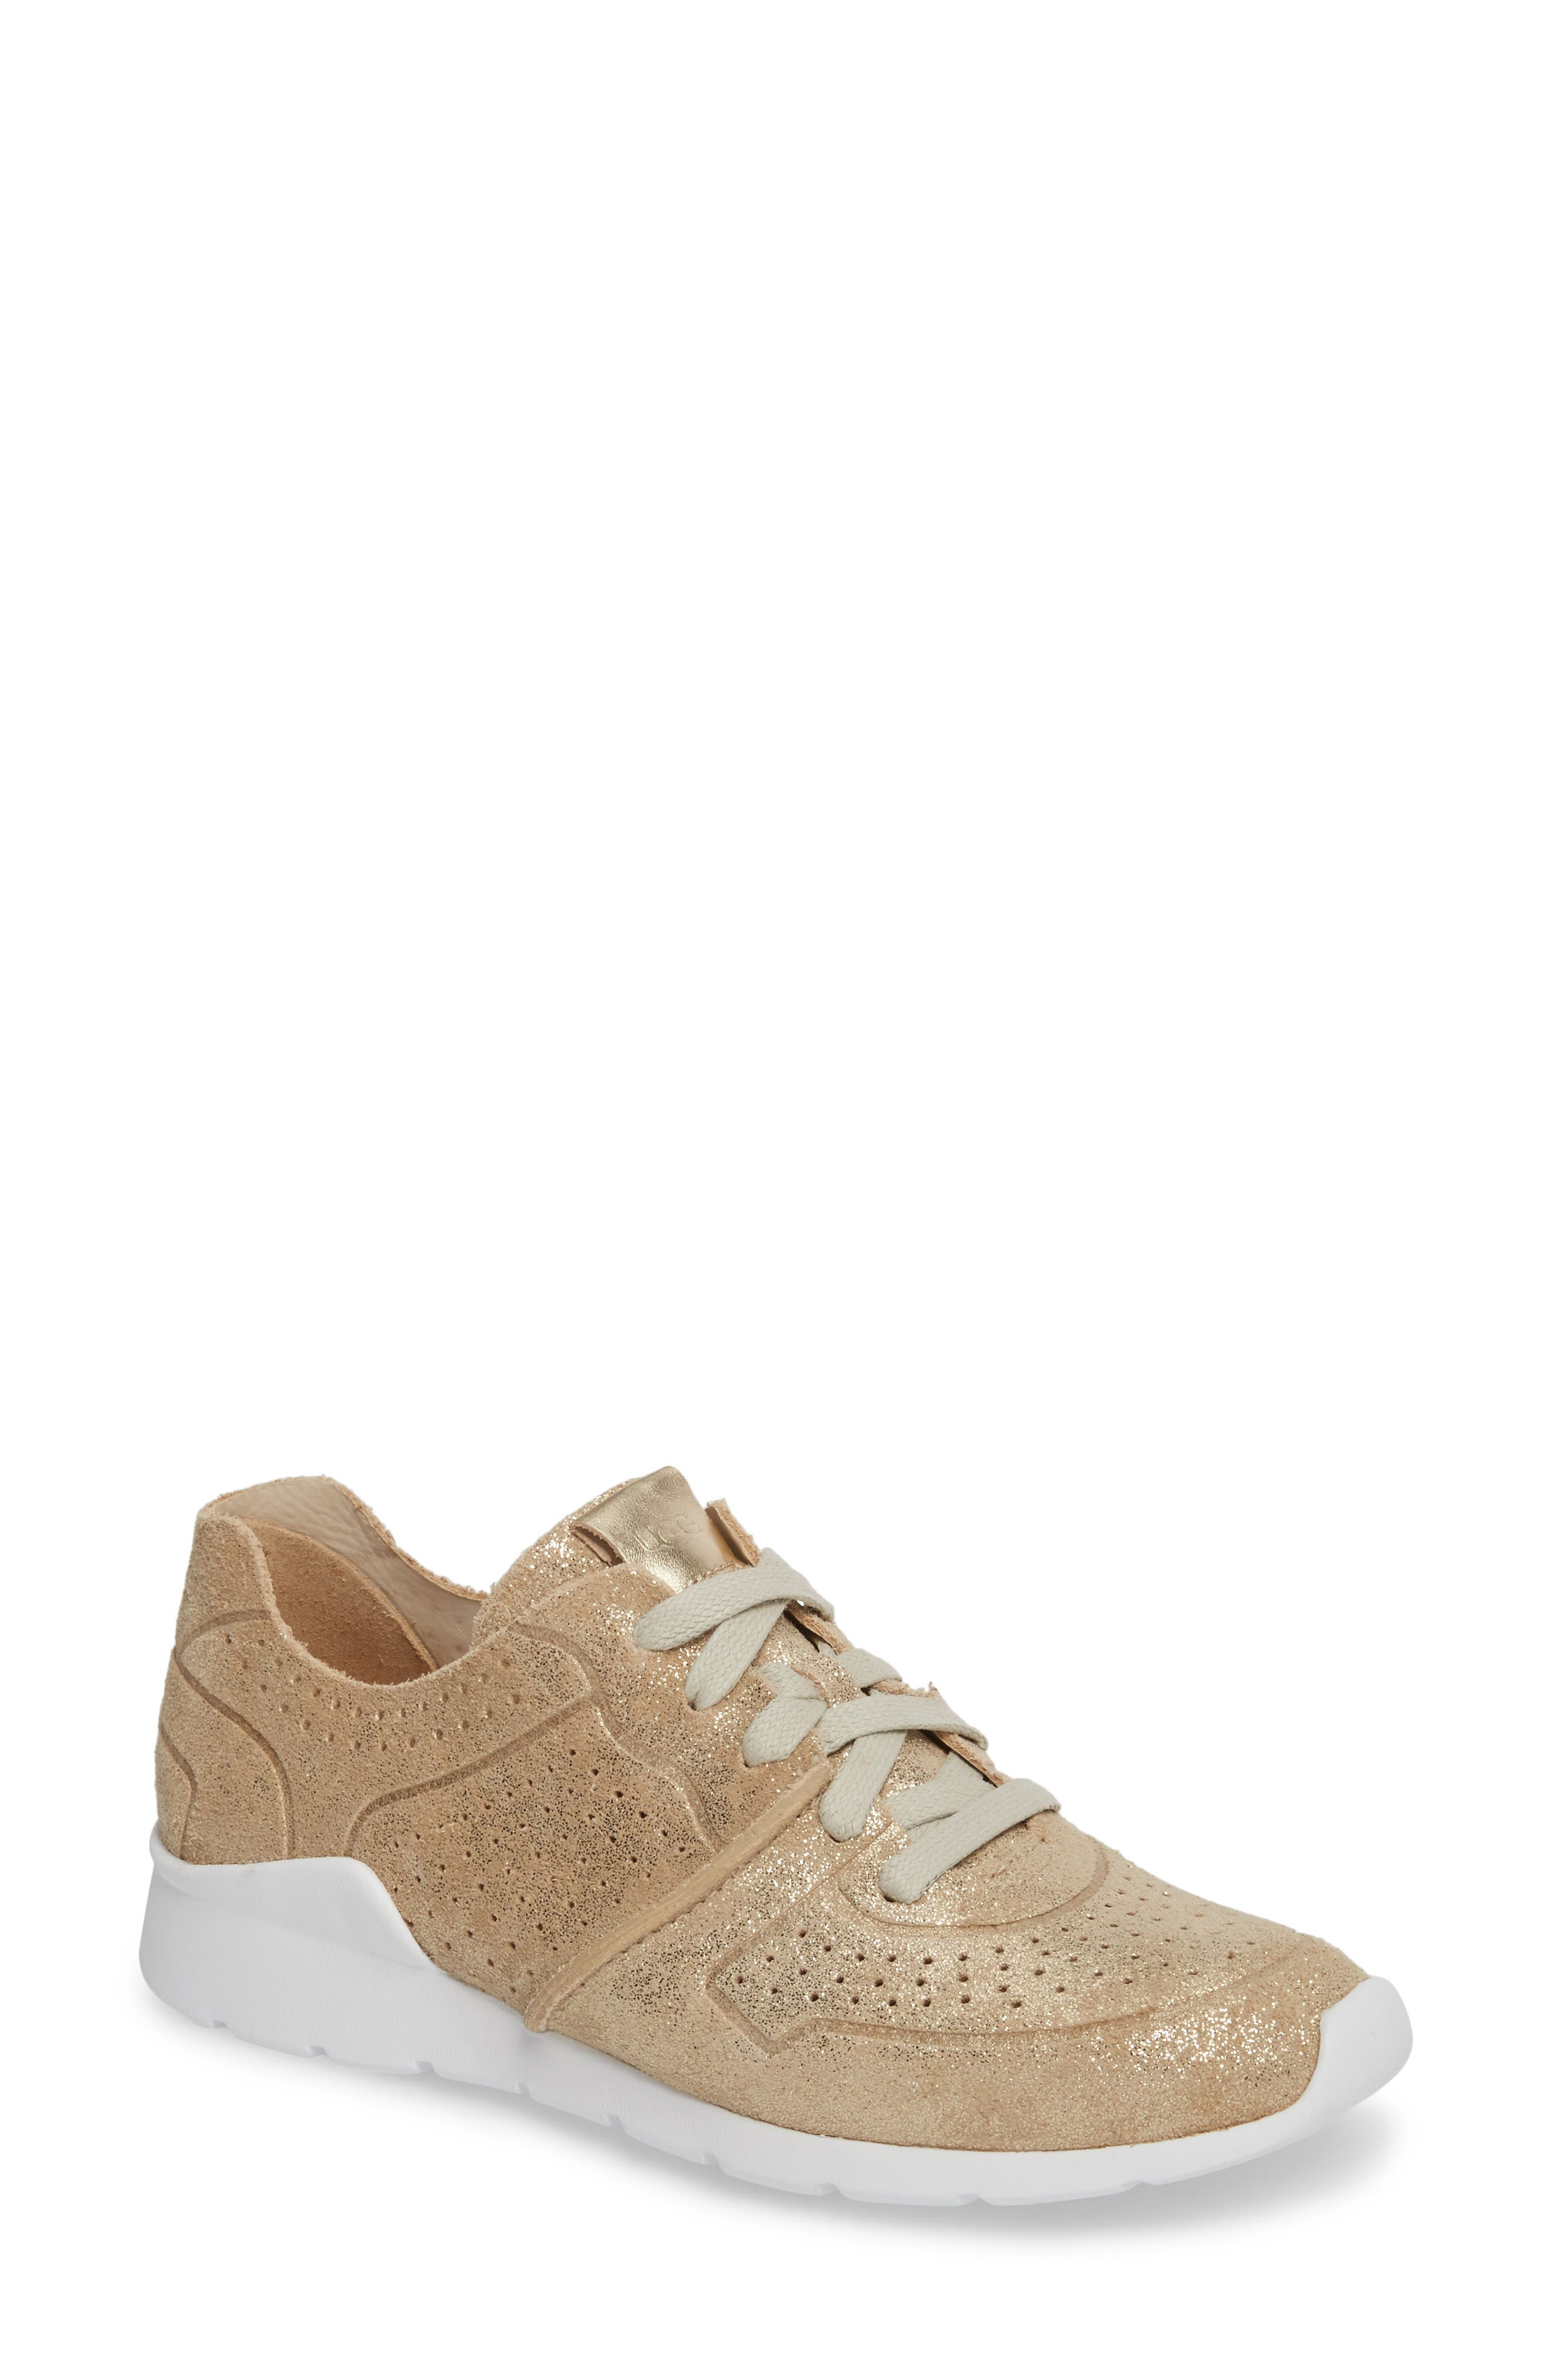 61c215cd9c9 Women'S Tye Stardust Leather Lace Up Sneakers in Gold